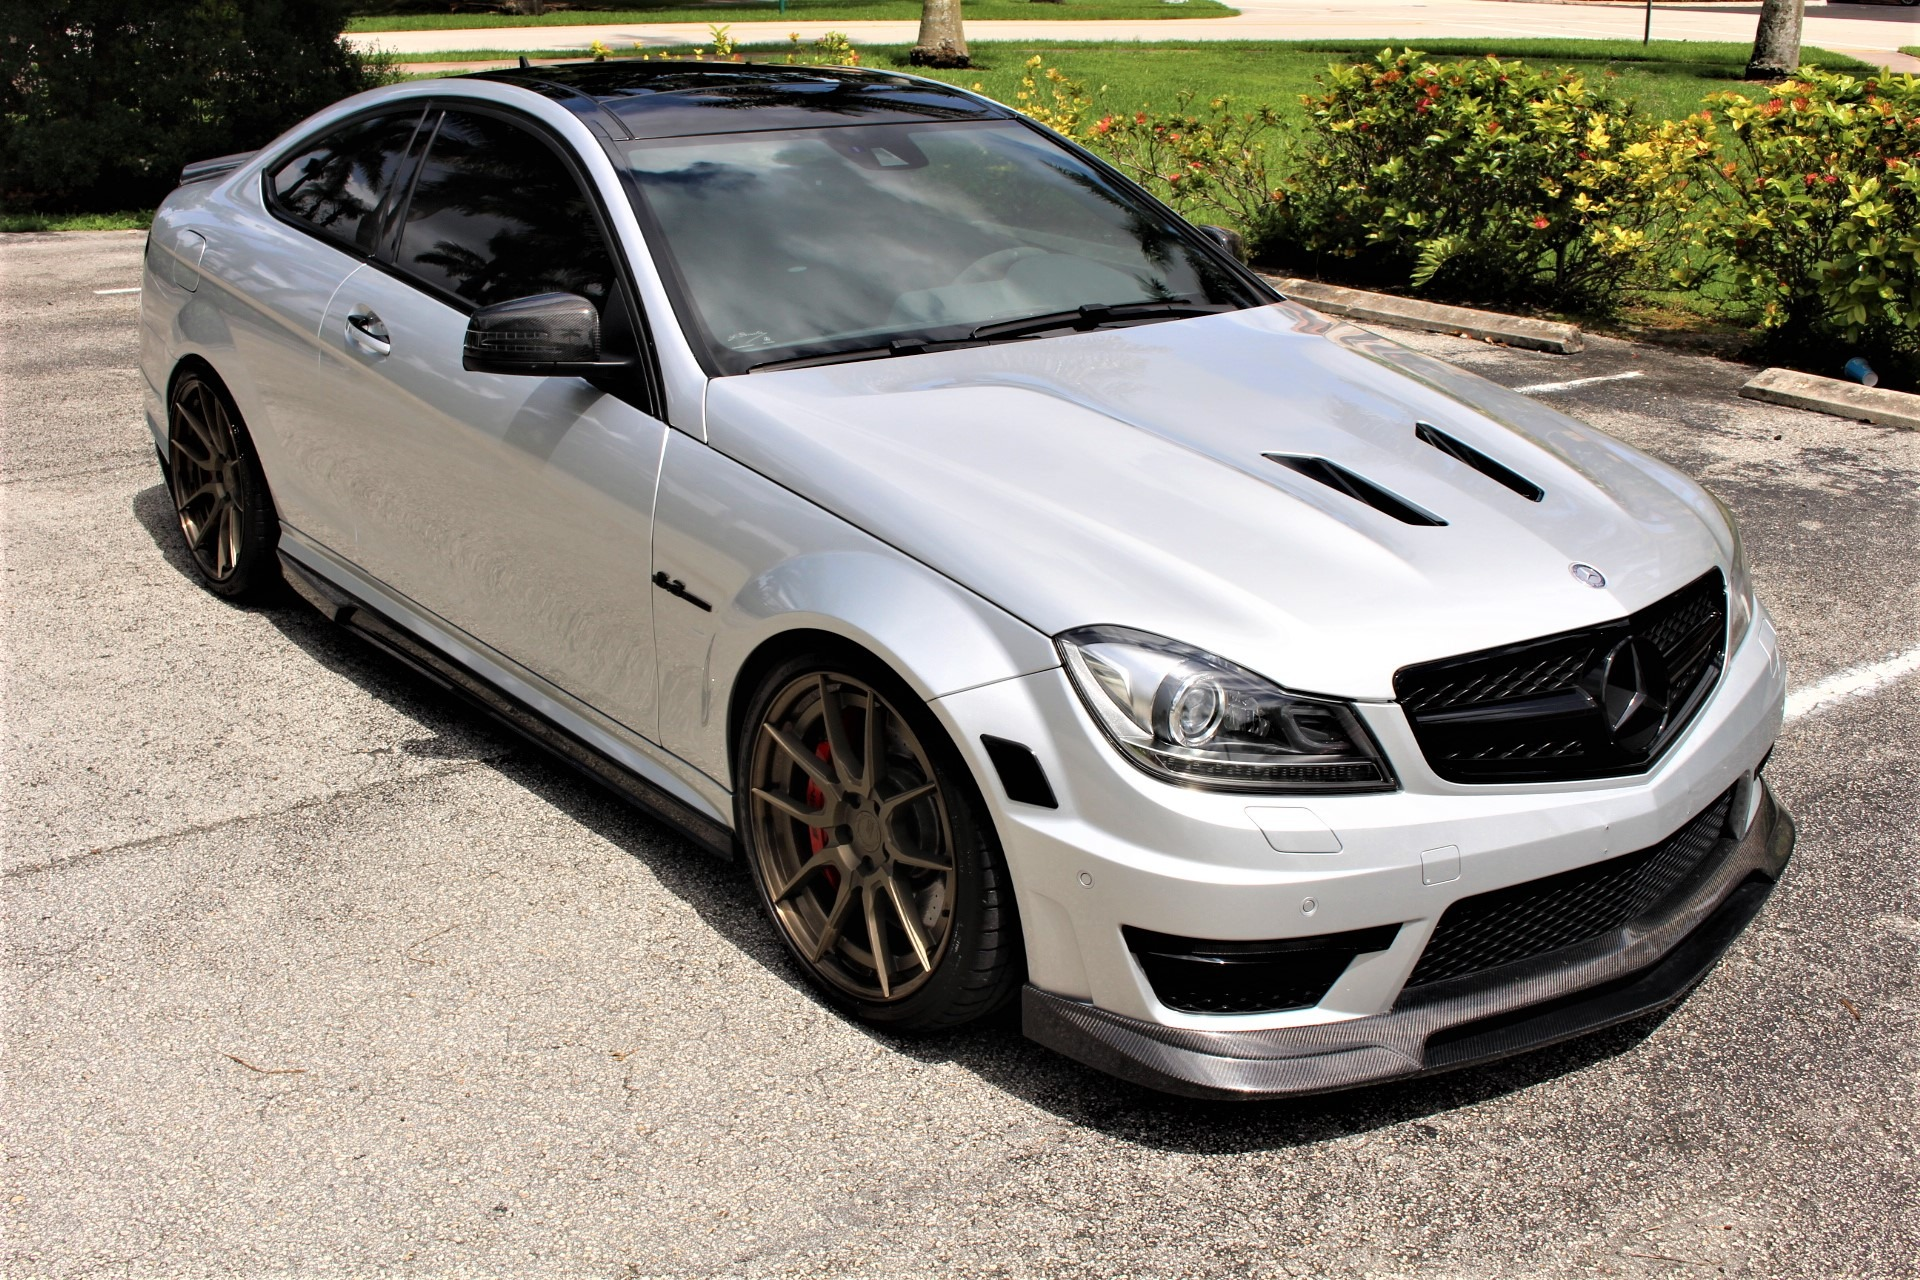 Used 2015 Mercedes-Benz C-Class C 63 AMG 507 Edition for sale Sold at The Gables Sports Cars in Miami FL 33146 1